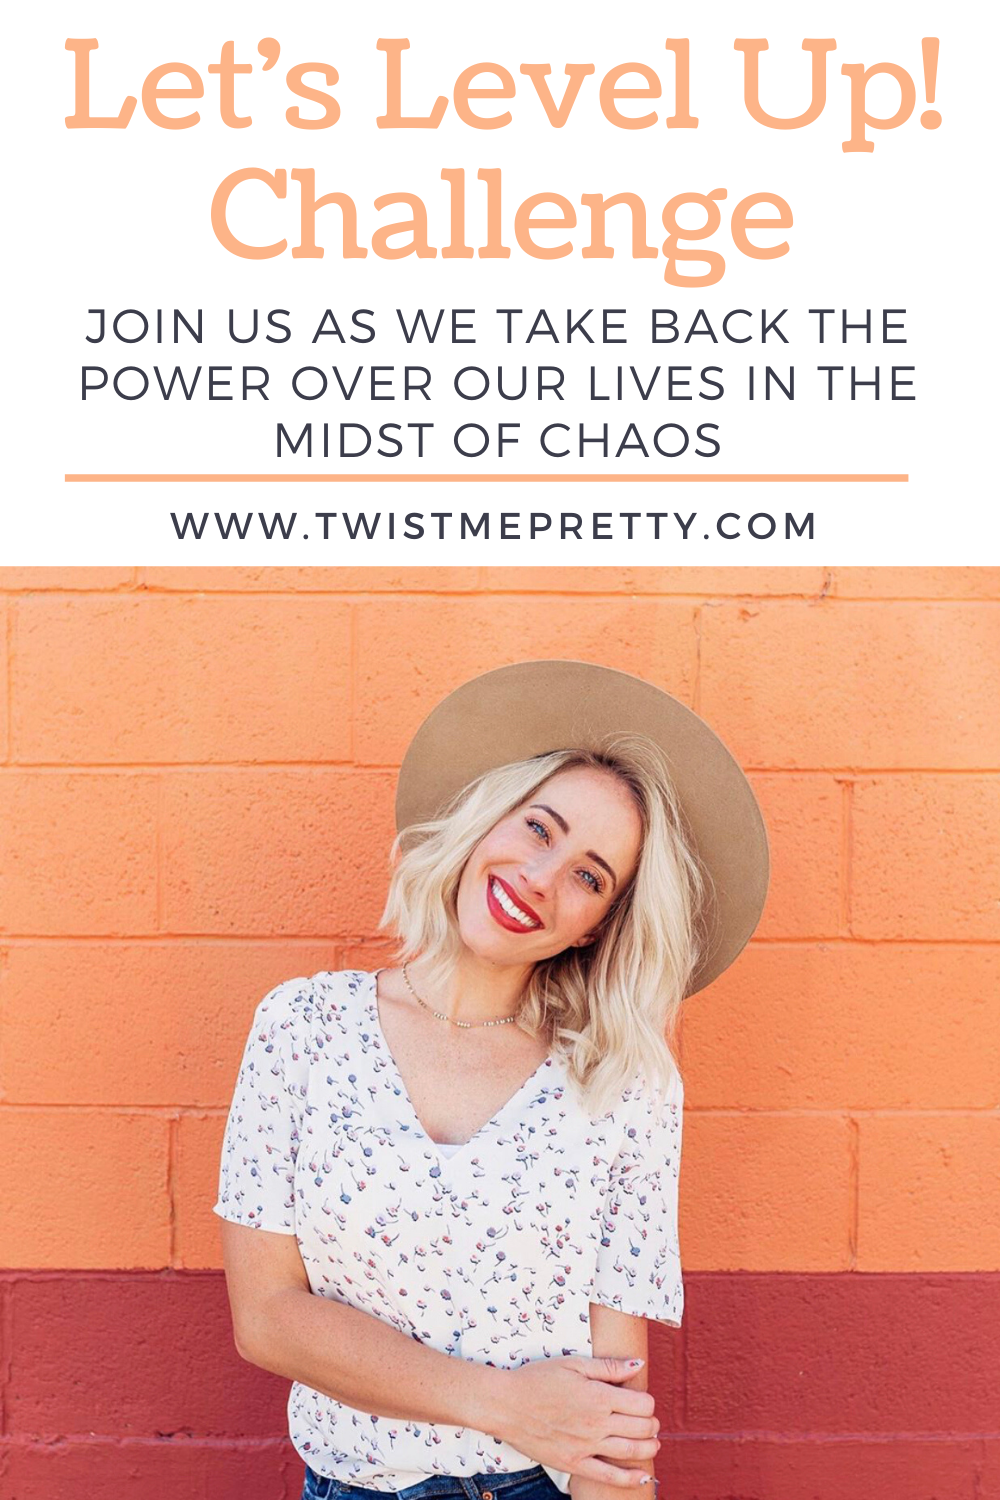 Let's Level Up! A 30 Day Challenge to take back the power and control over our lives in the midst of chaos. www.twistmepretty.com